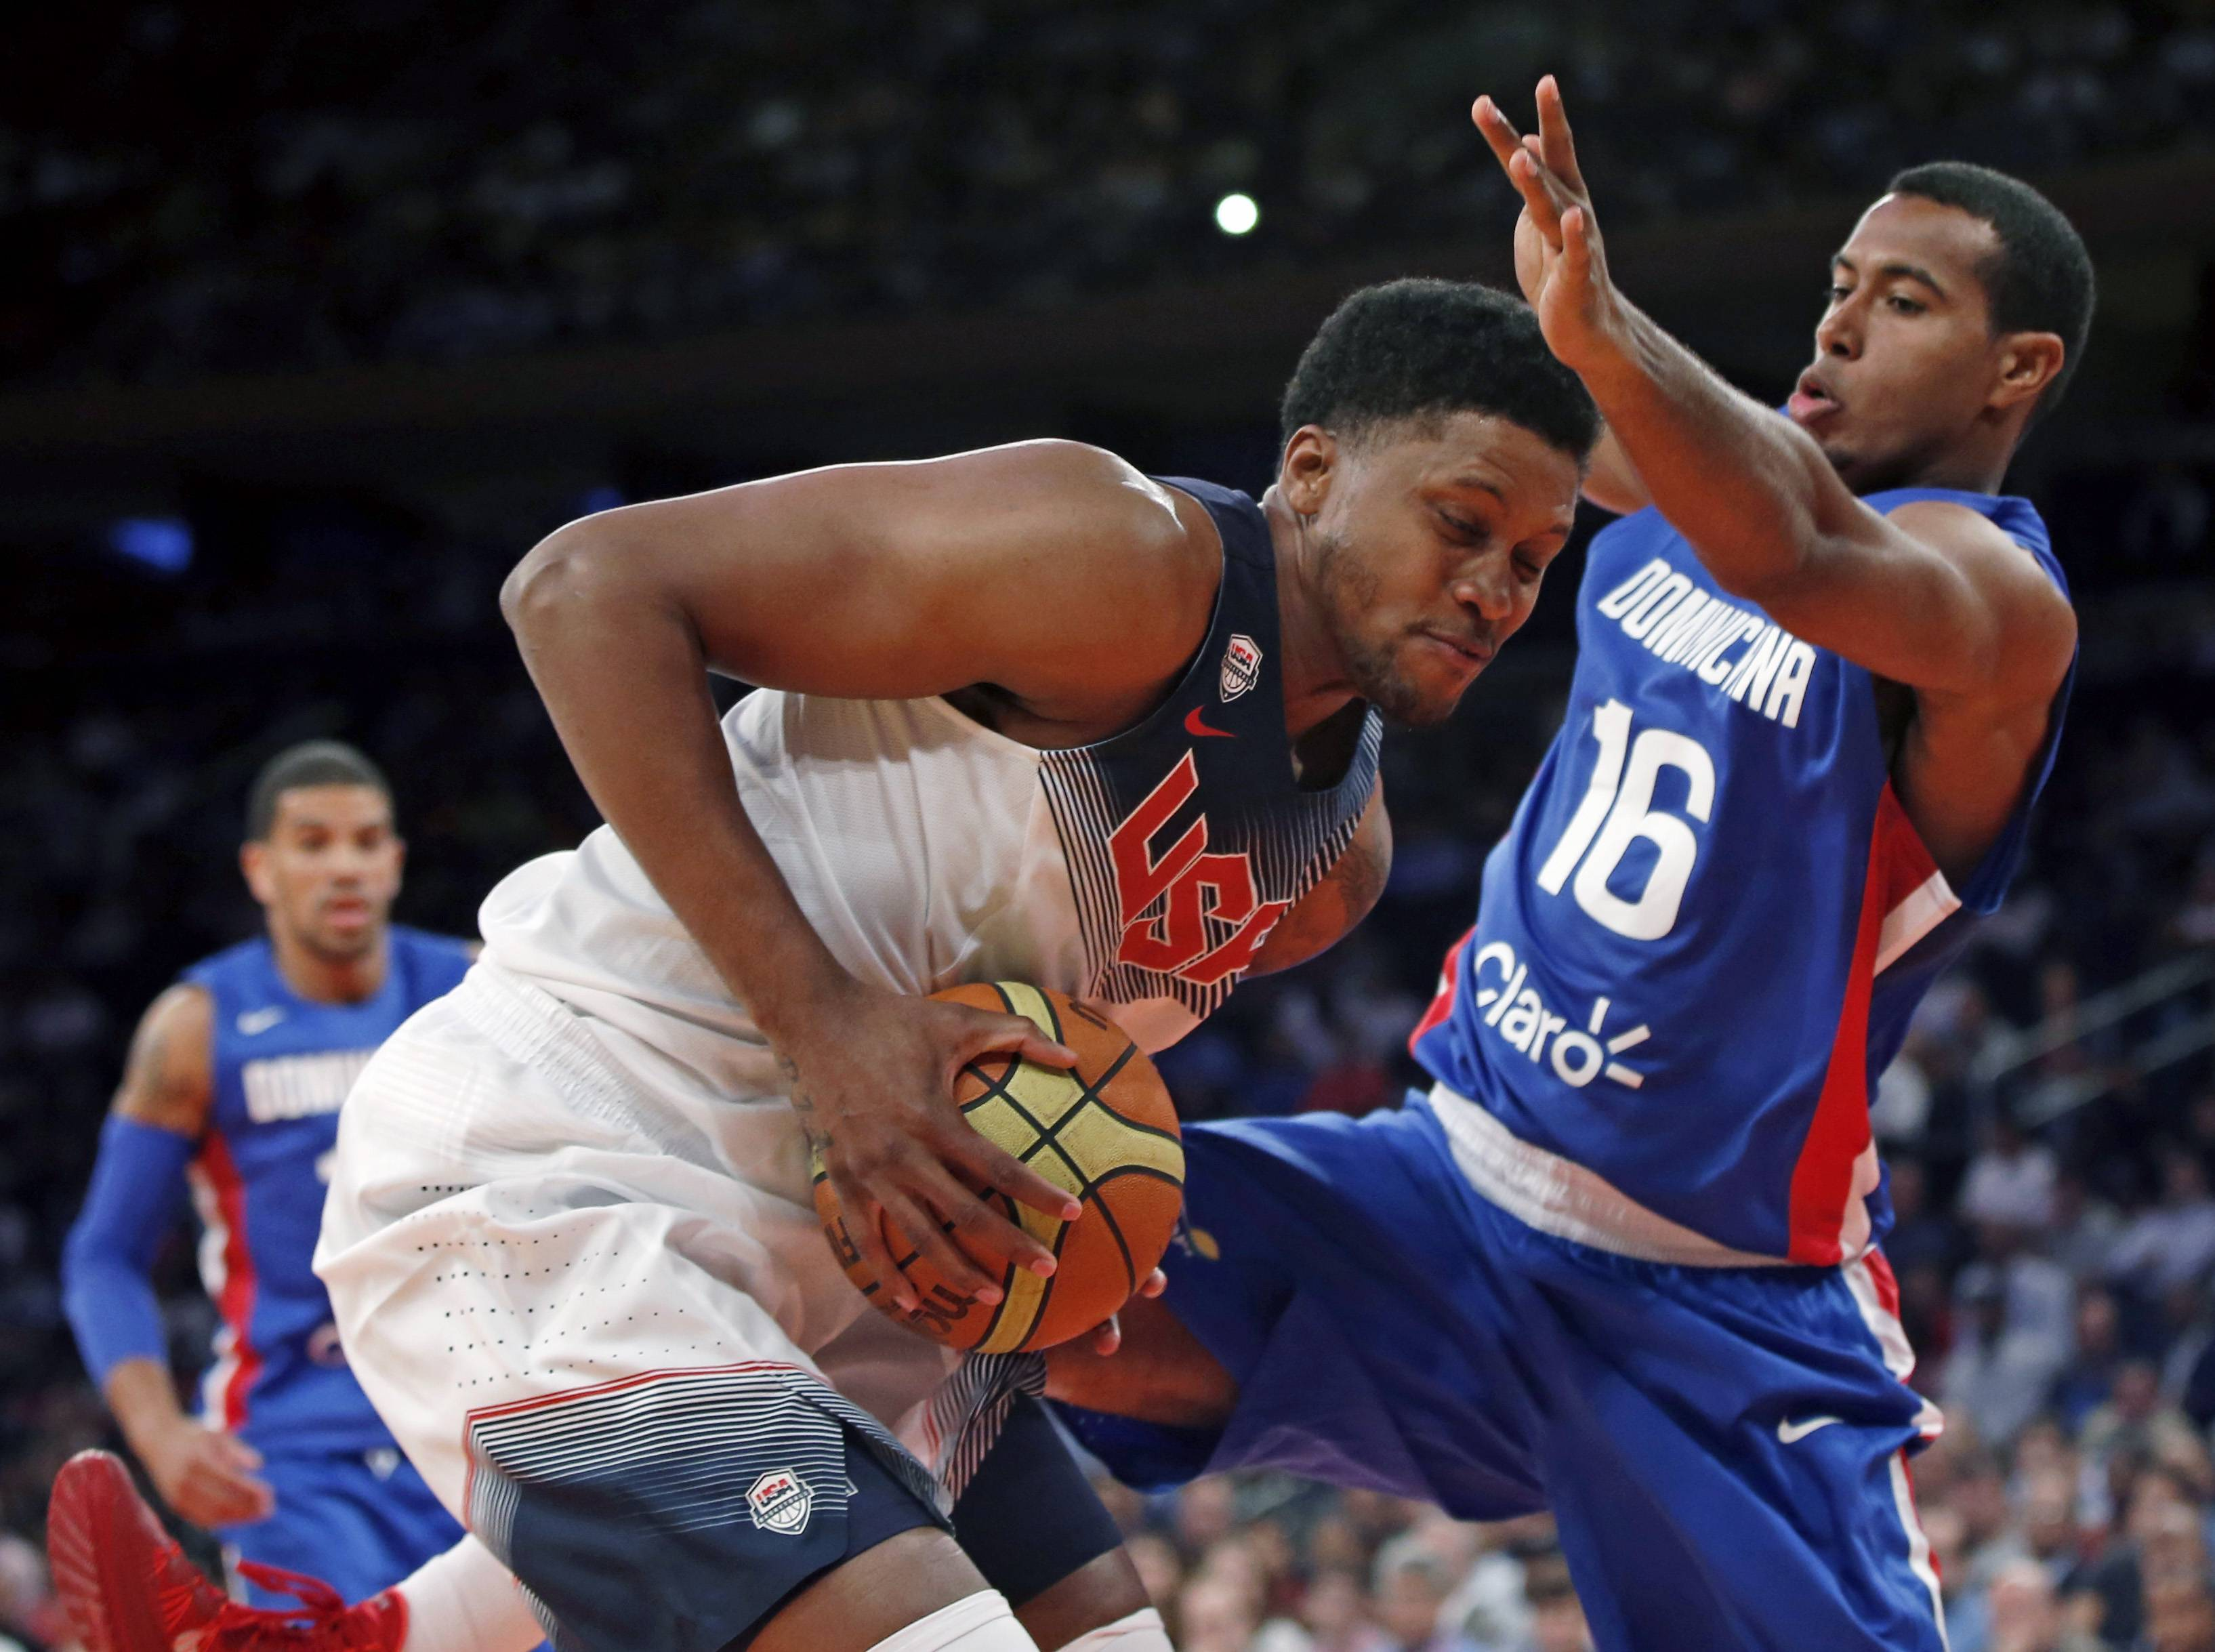 Dominican Republic forward Orlando Sanchez (16) defends as U.S. forward Rudy Gay protects the ball during the first half of an exhibition basketball game Wednesday at Madison Square Garden in New York. The United States won 105-62.